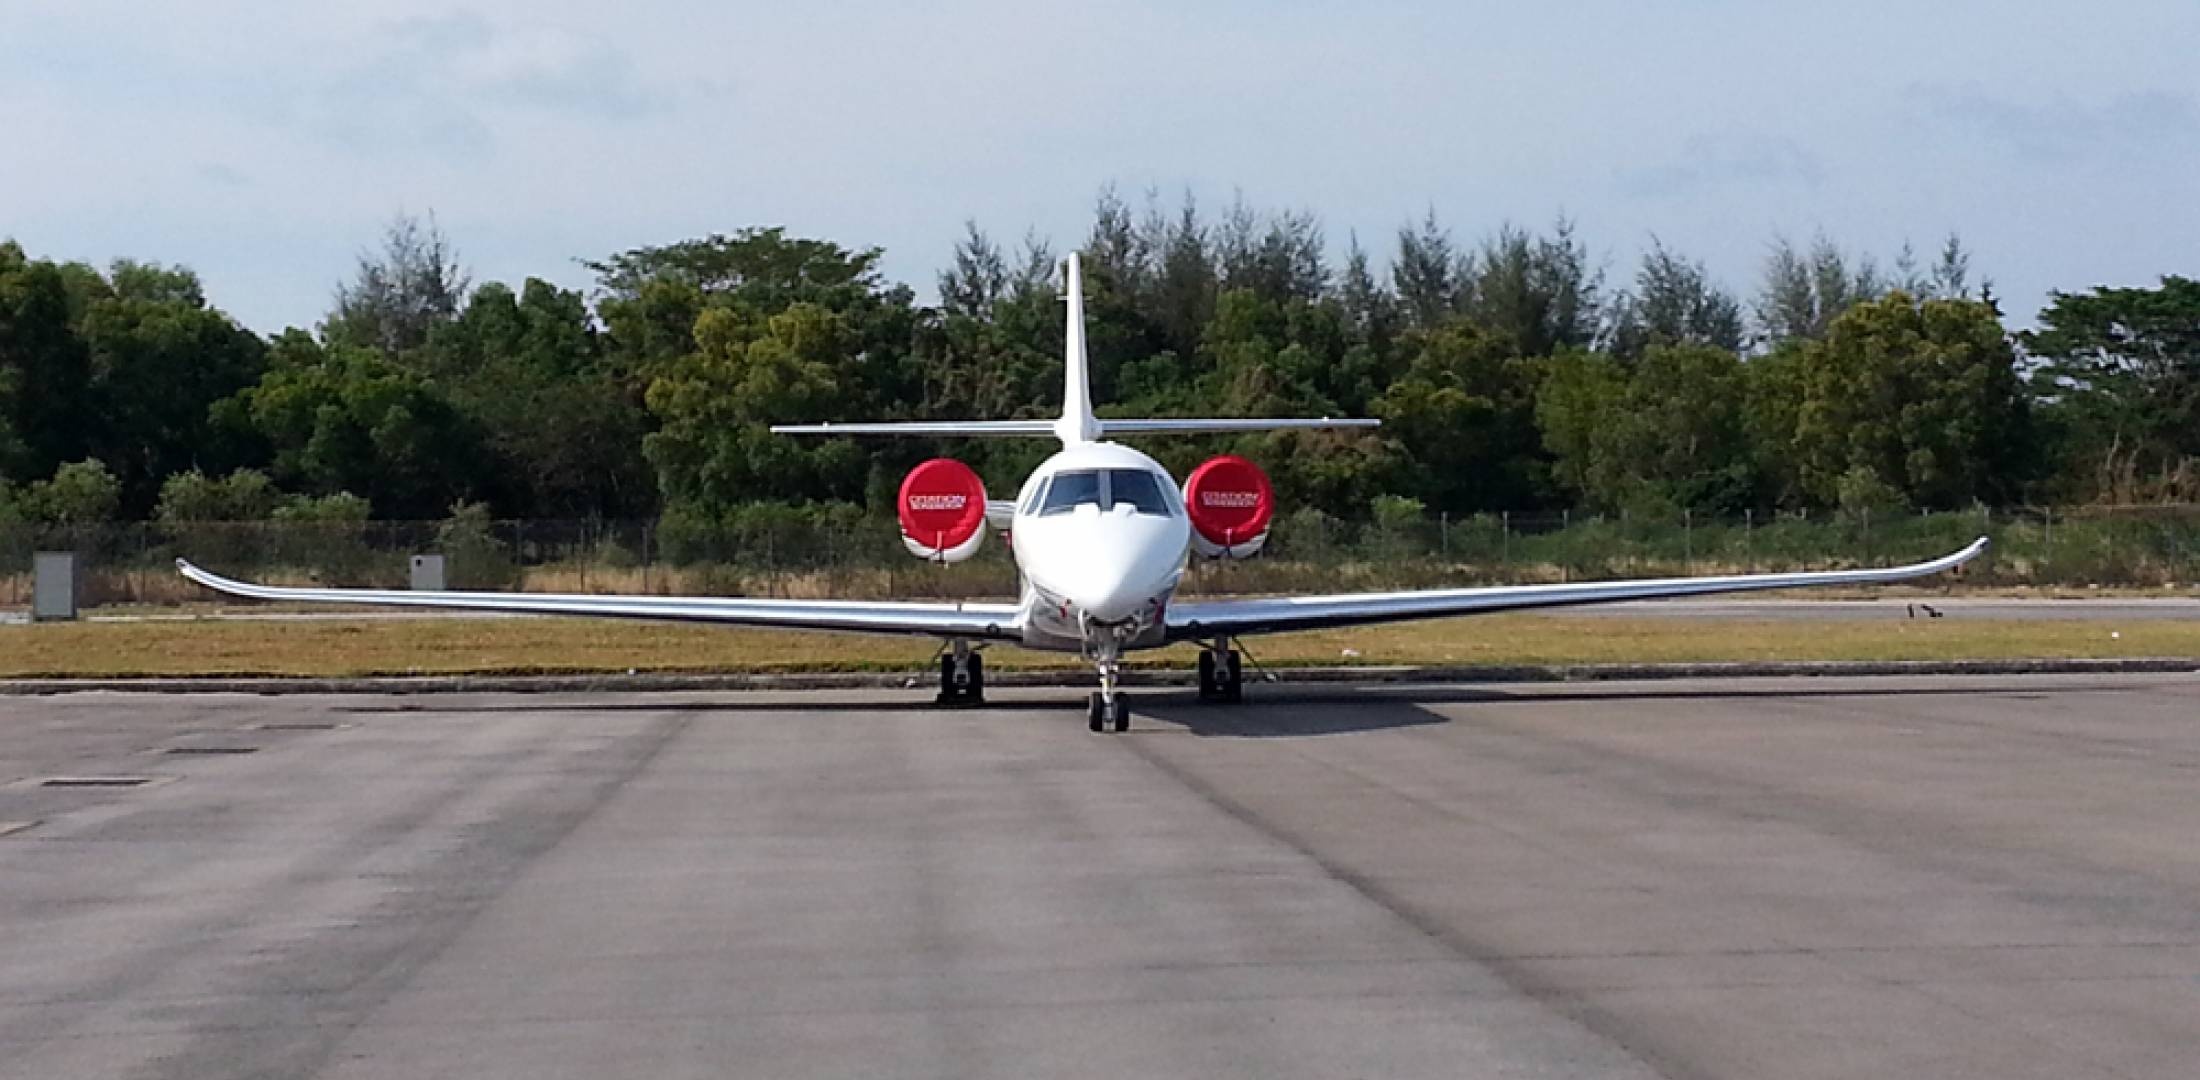 This Cessna Citation Sovereign was the first business jet to arrive at the 2014 Singapore Air Show static display.